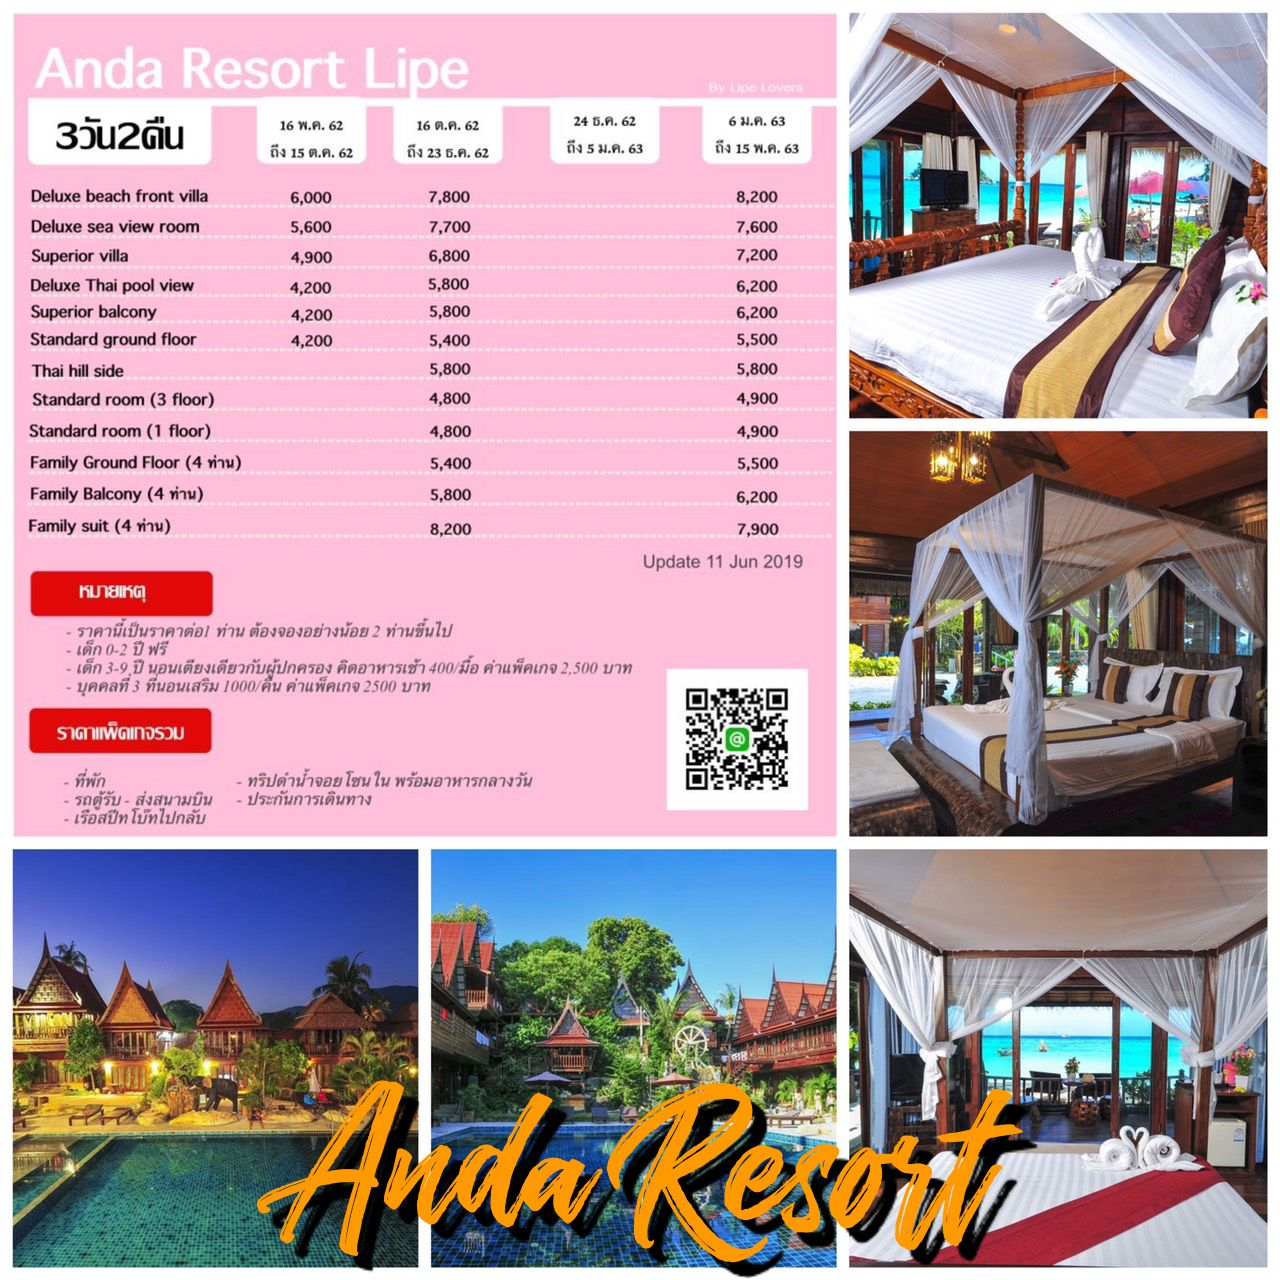 Anda Resort